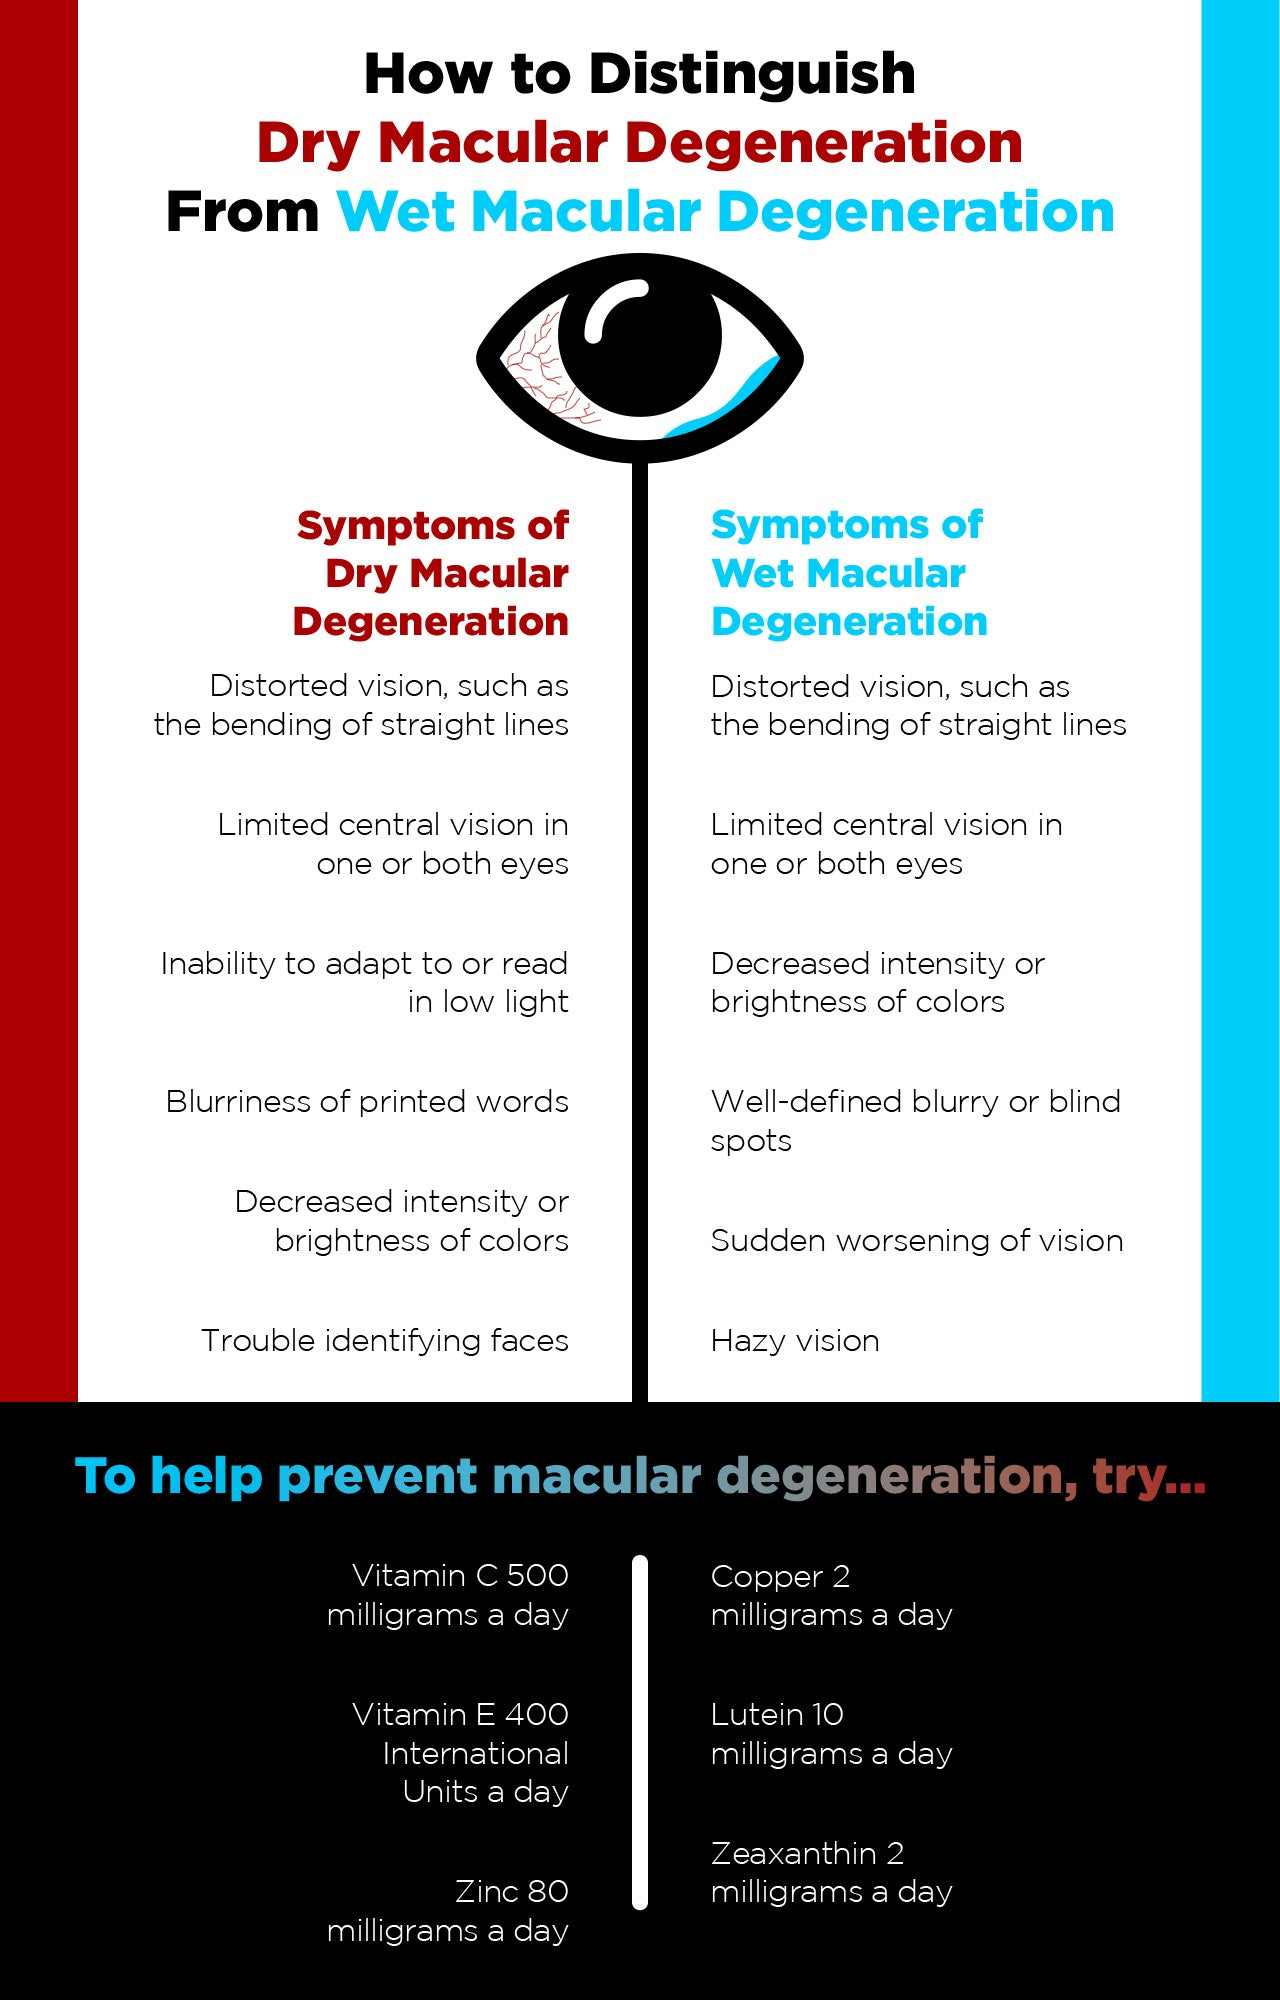 Dry vs. wet macular degeneration